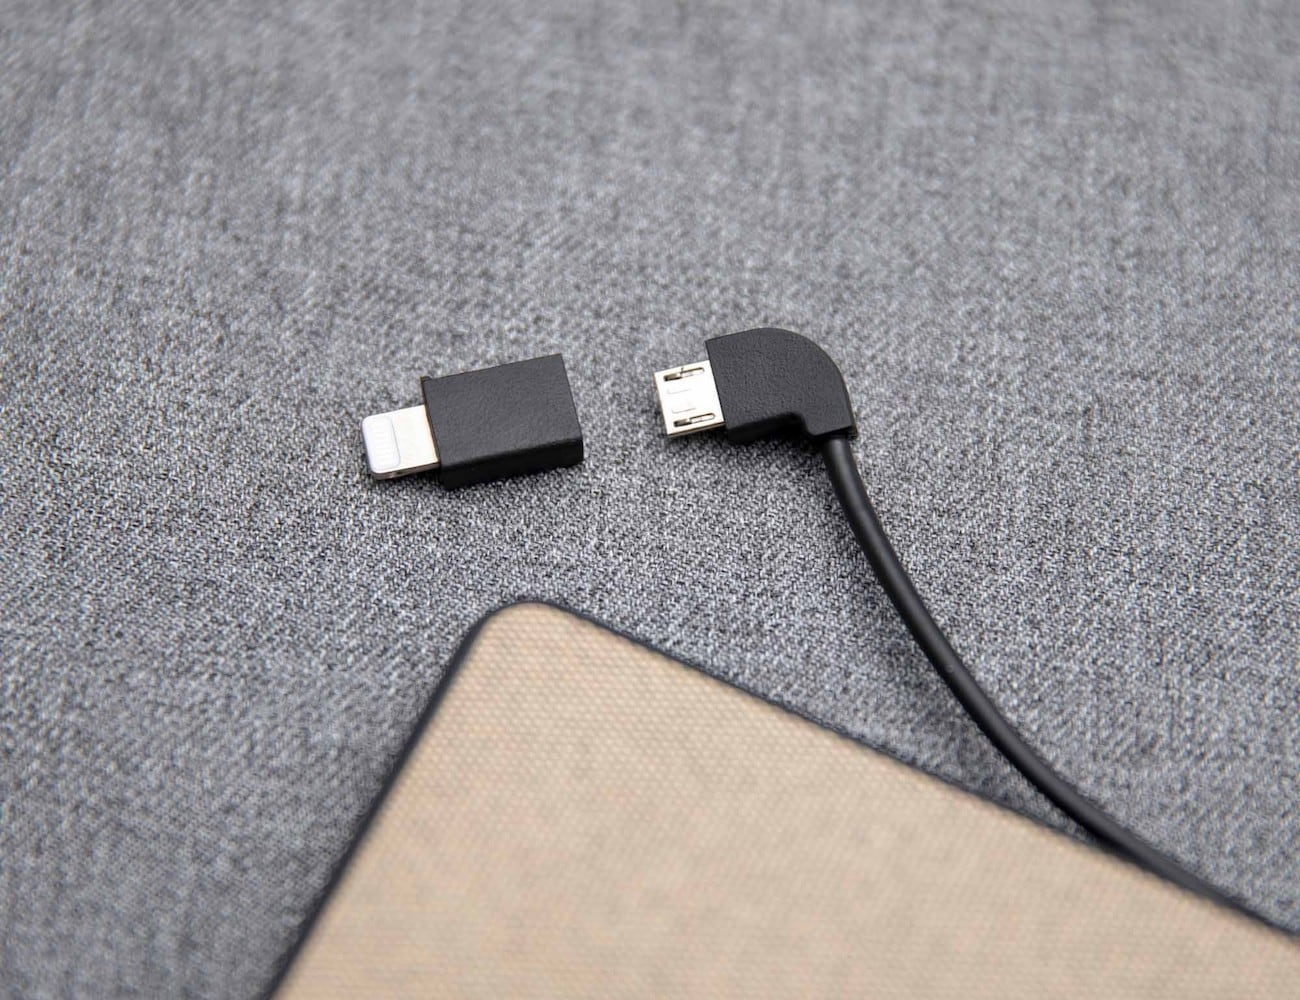 mophie powerstation plus mini Fabric Power Bank keeps your phone charged for 13 more hours